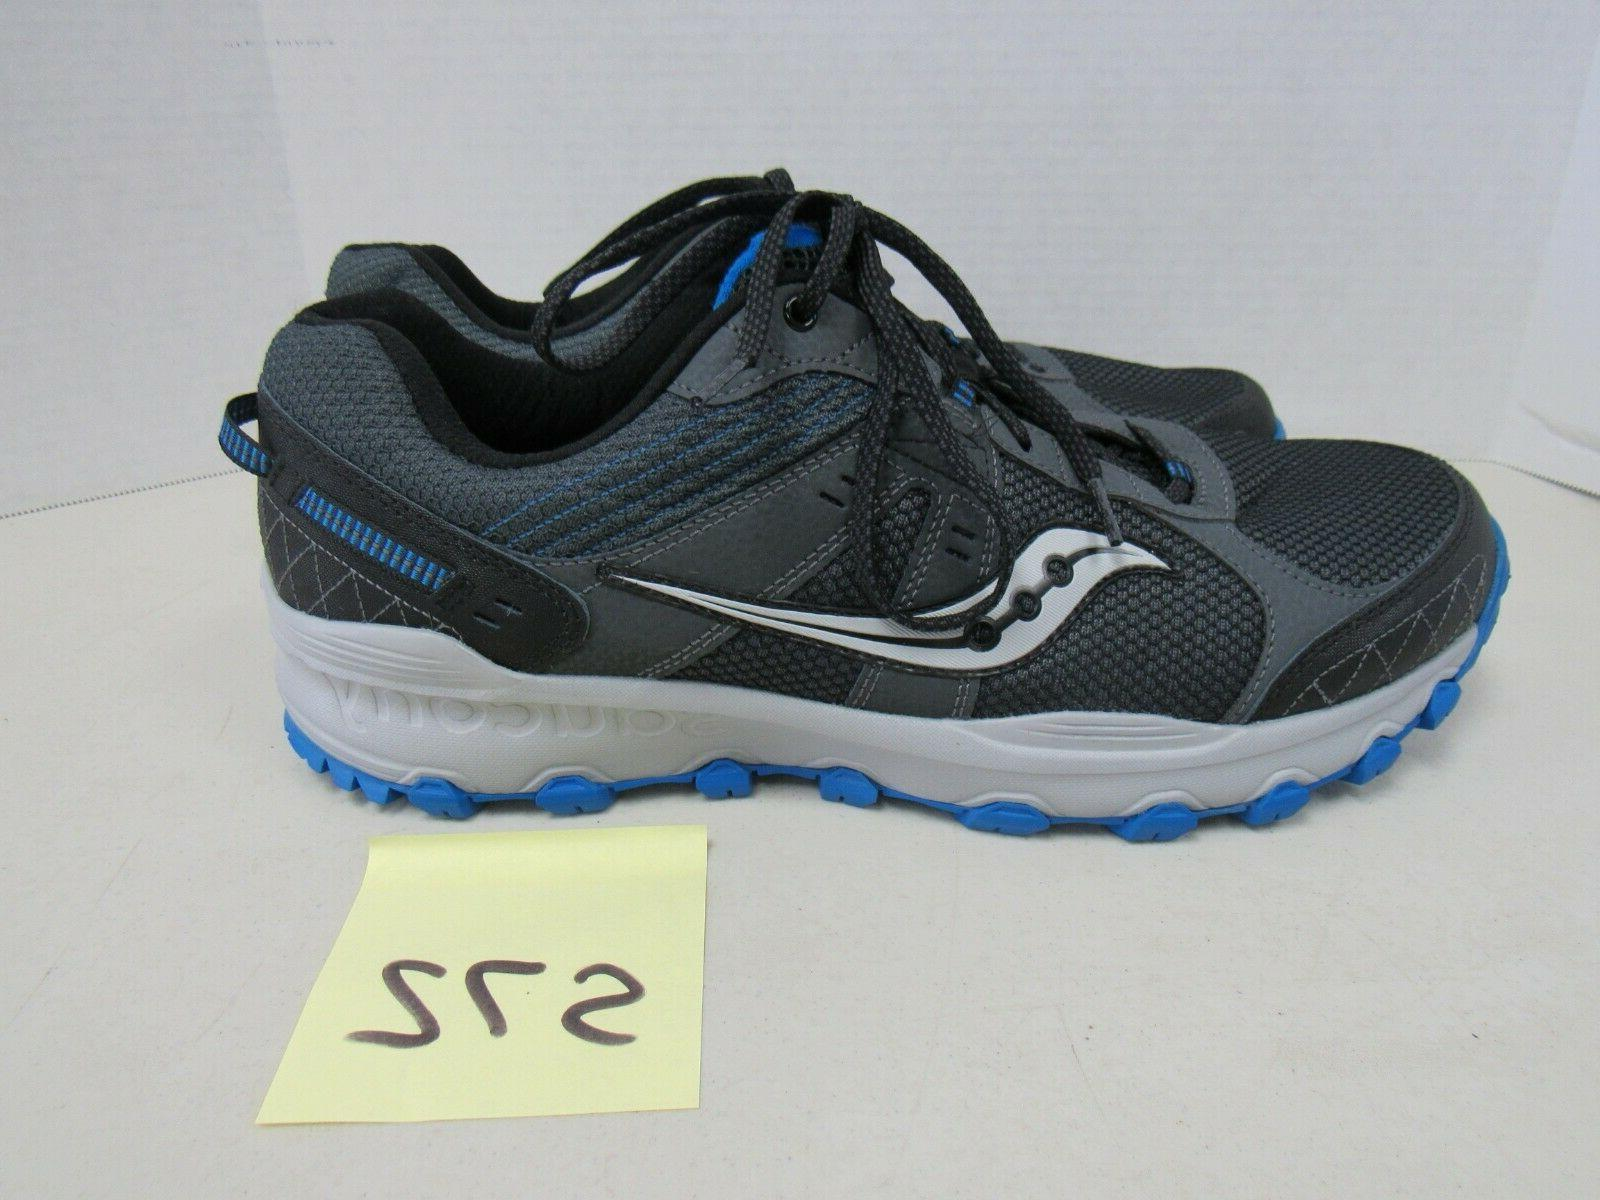 mens raptor running training shoes sneakers sz